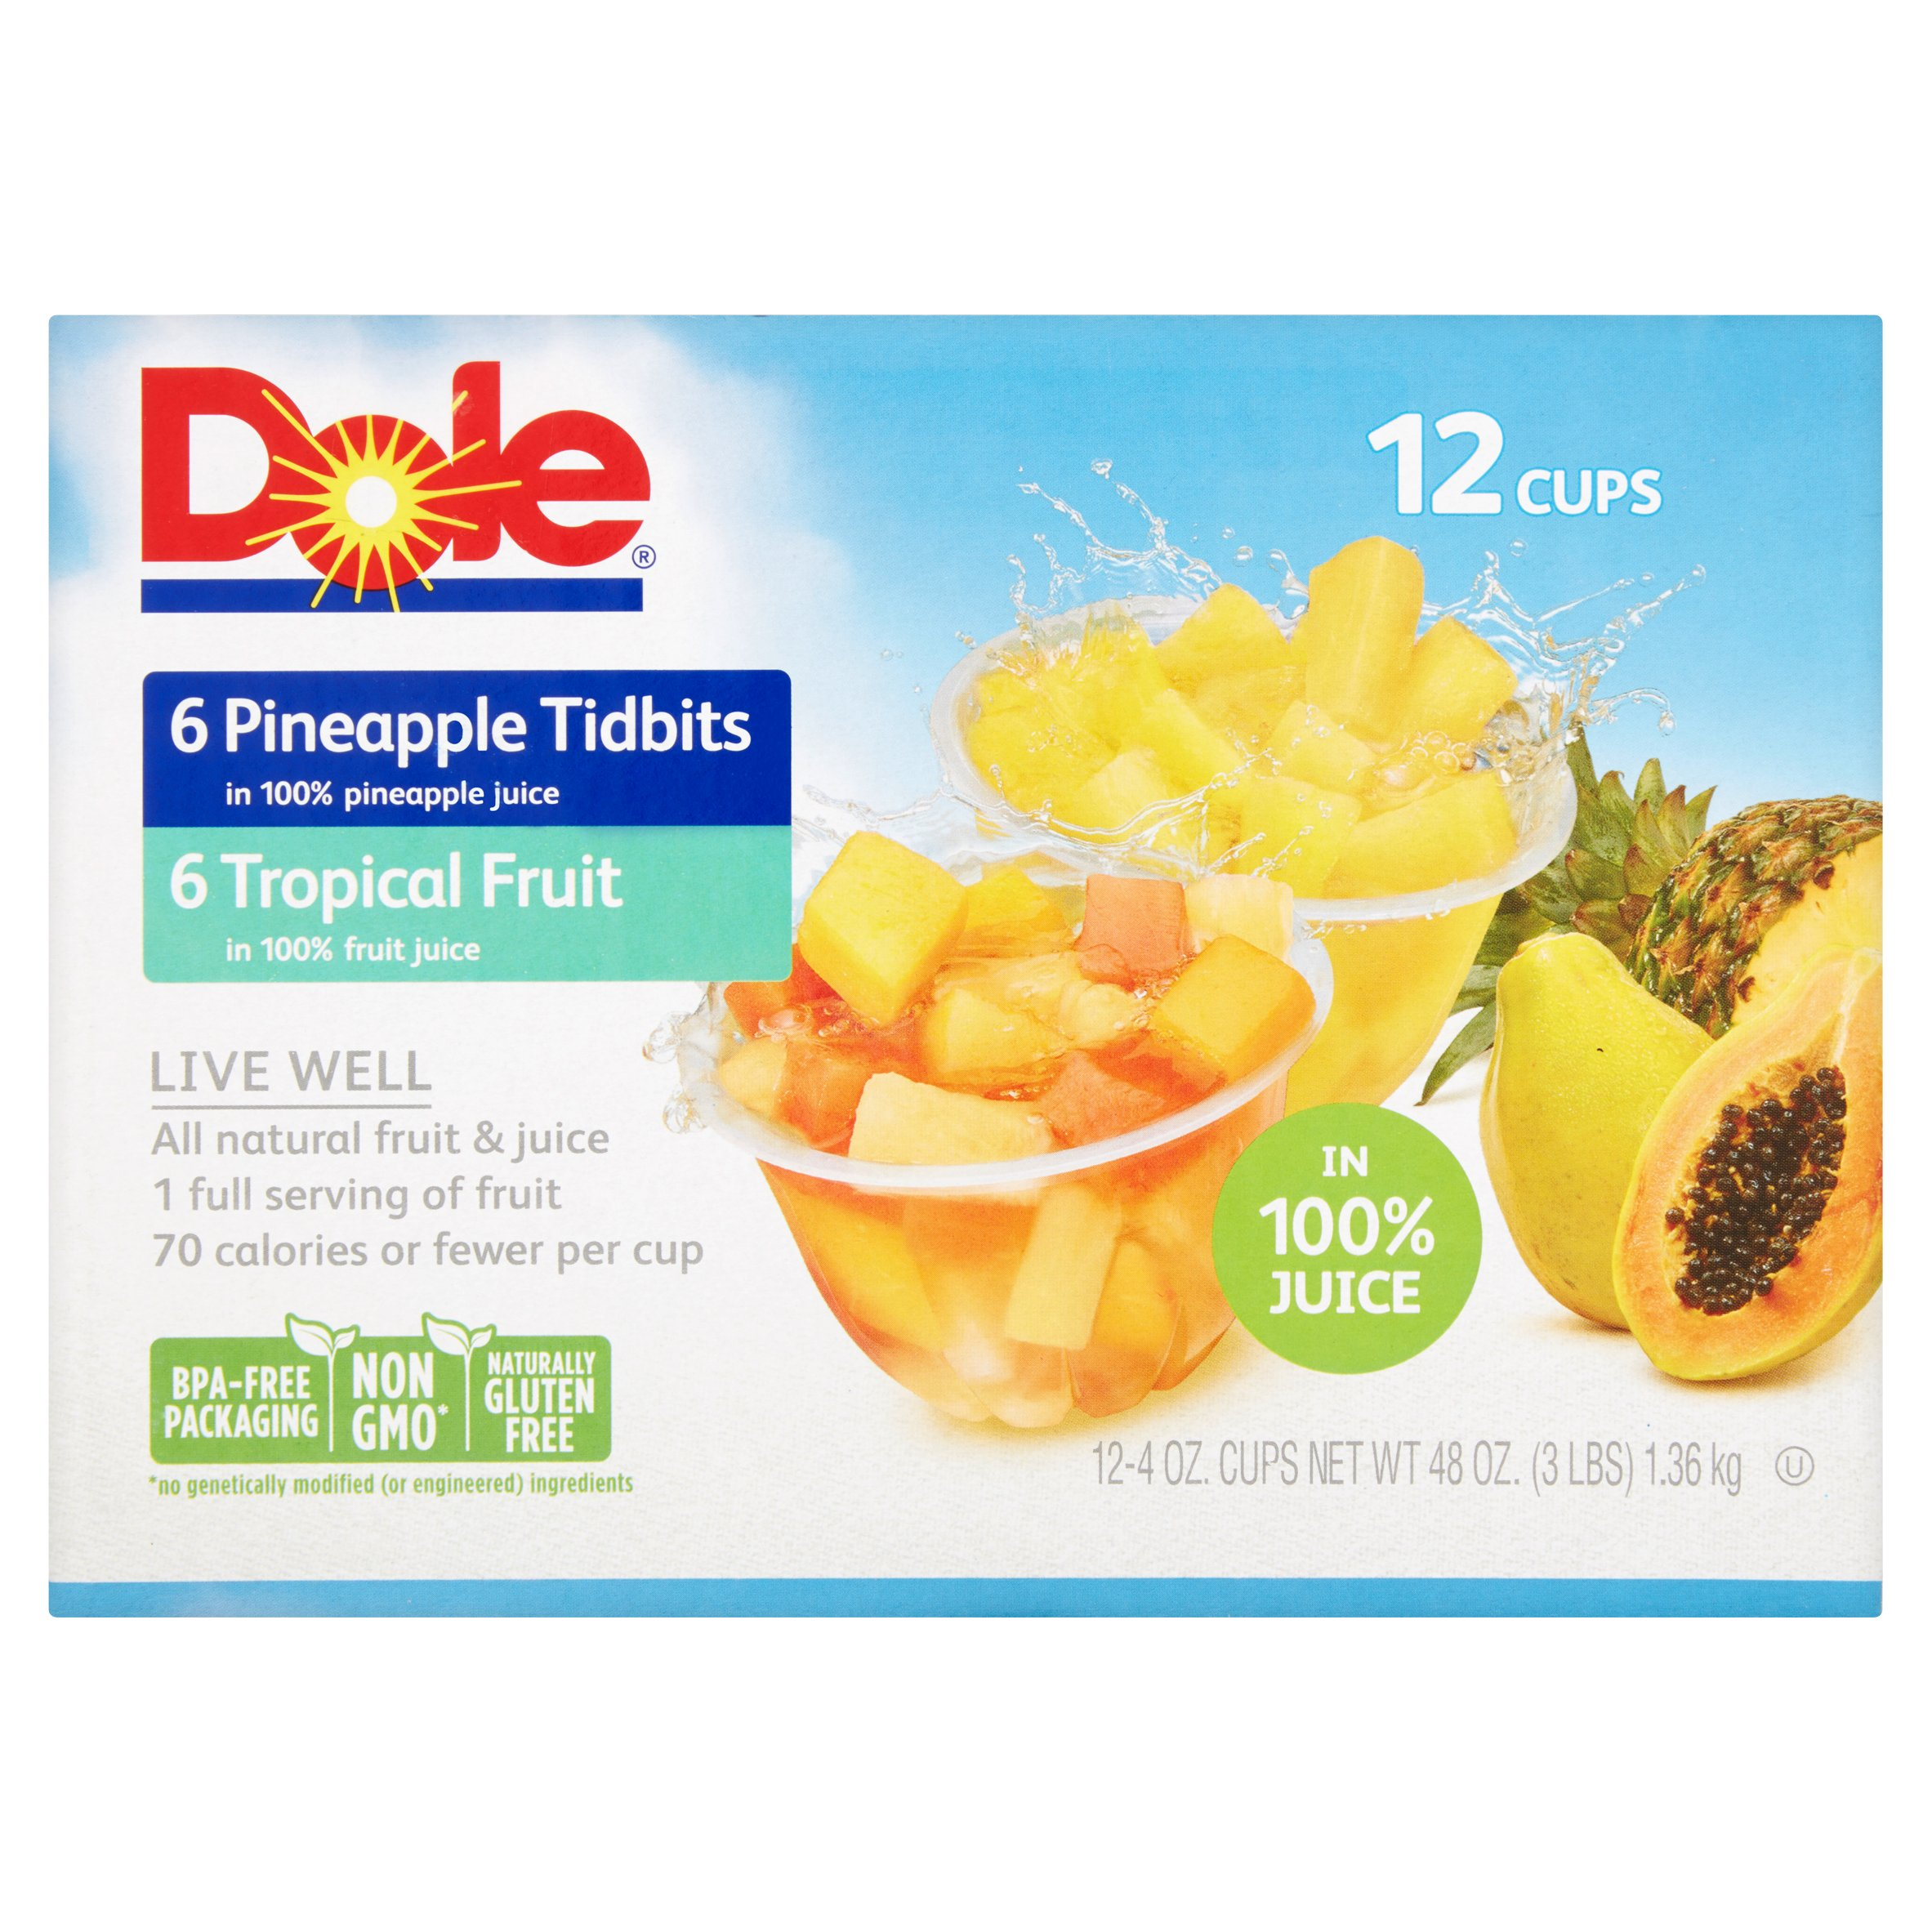 Dole�� Tropical Fruit and Pineapple Tidbits in 100% Fruit Juice 12-4 oz. Cups